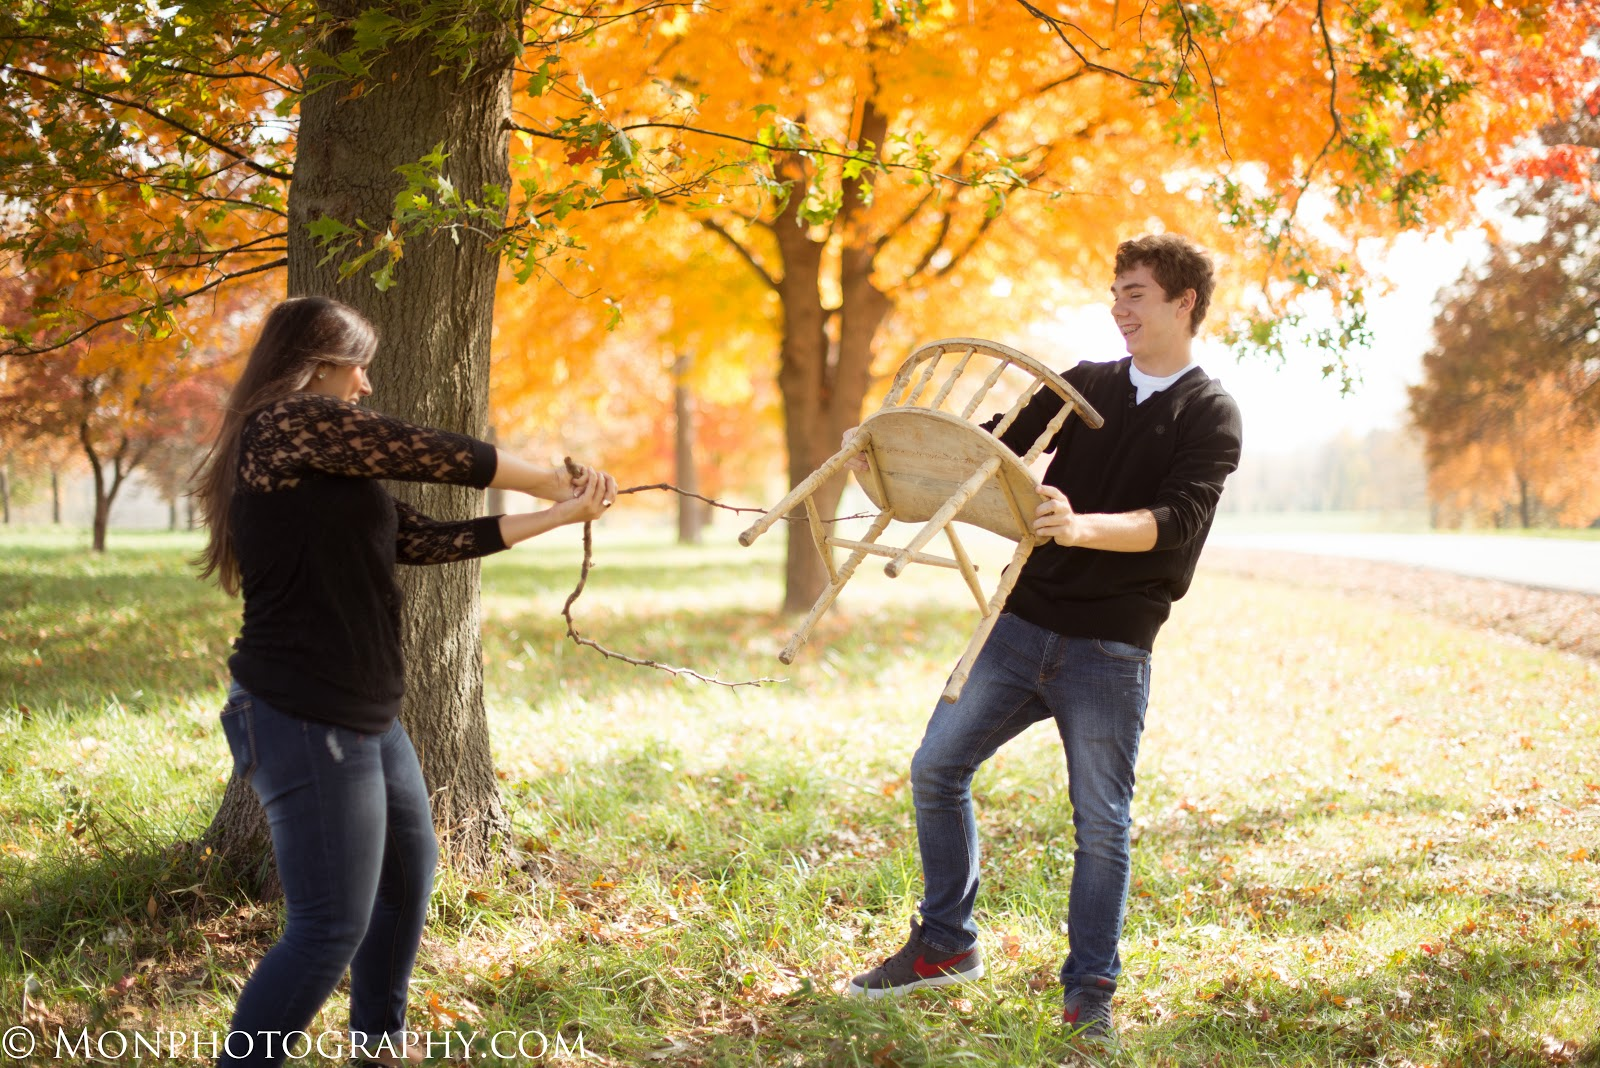 Every Year There Are Gorgeous Trees In The Fall This Brother And Sister Had Such A Fun Playful Relationship So Cute To Photograph I Love My Job